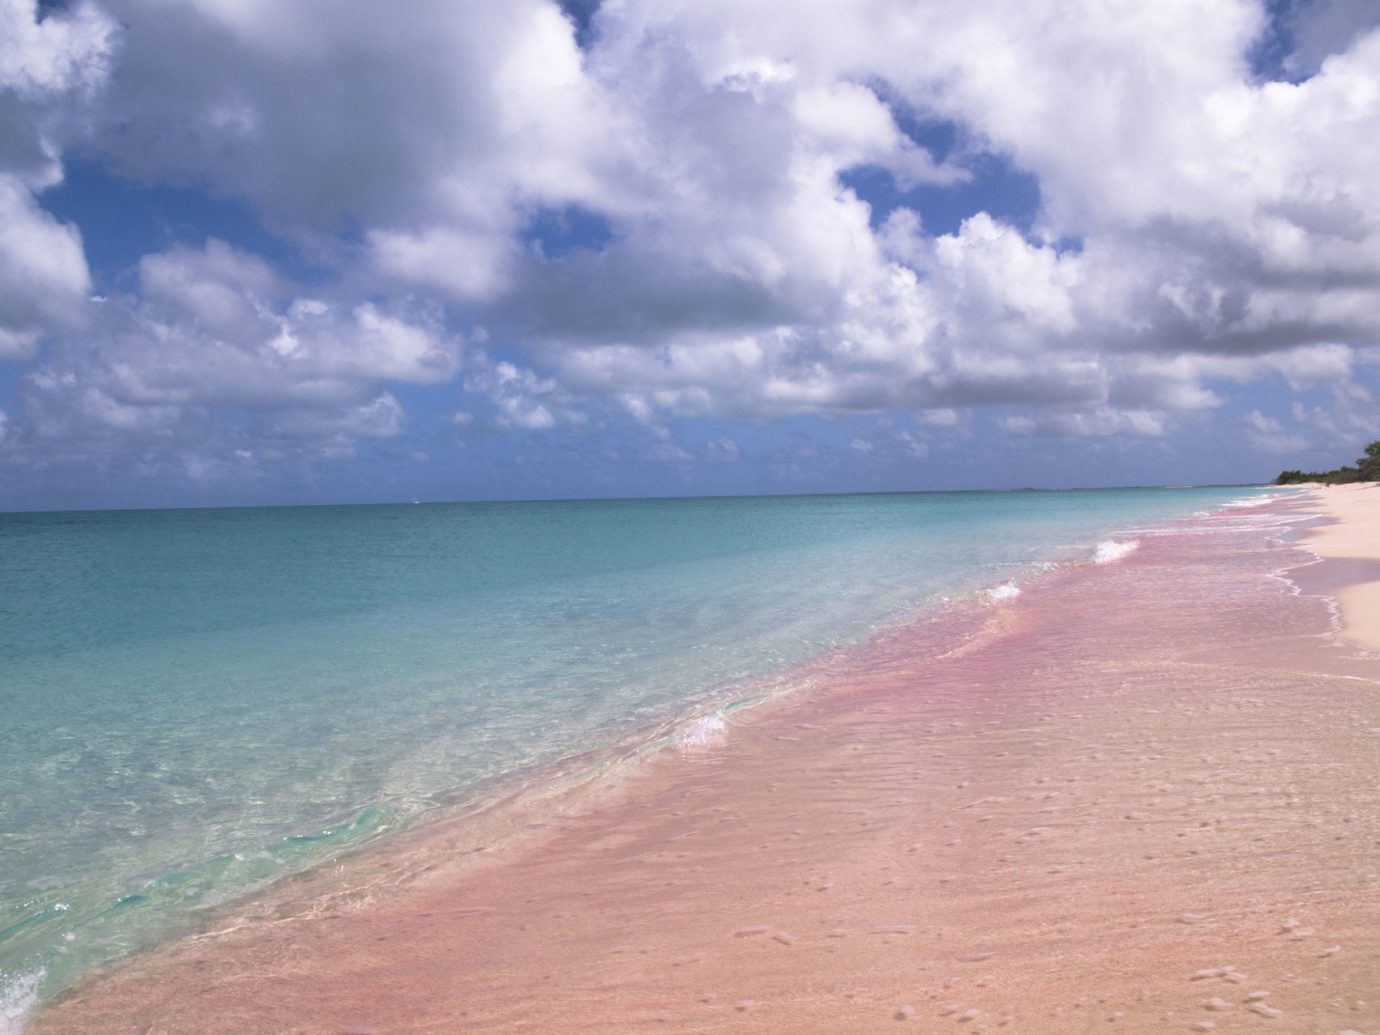 Pink Sands Beach in the Bahamas